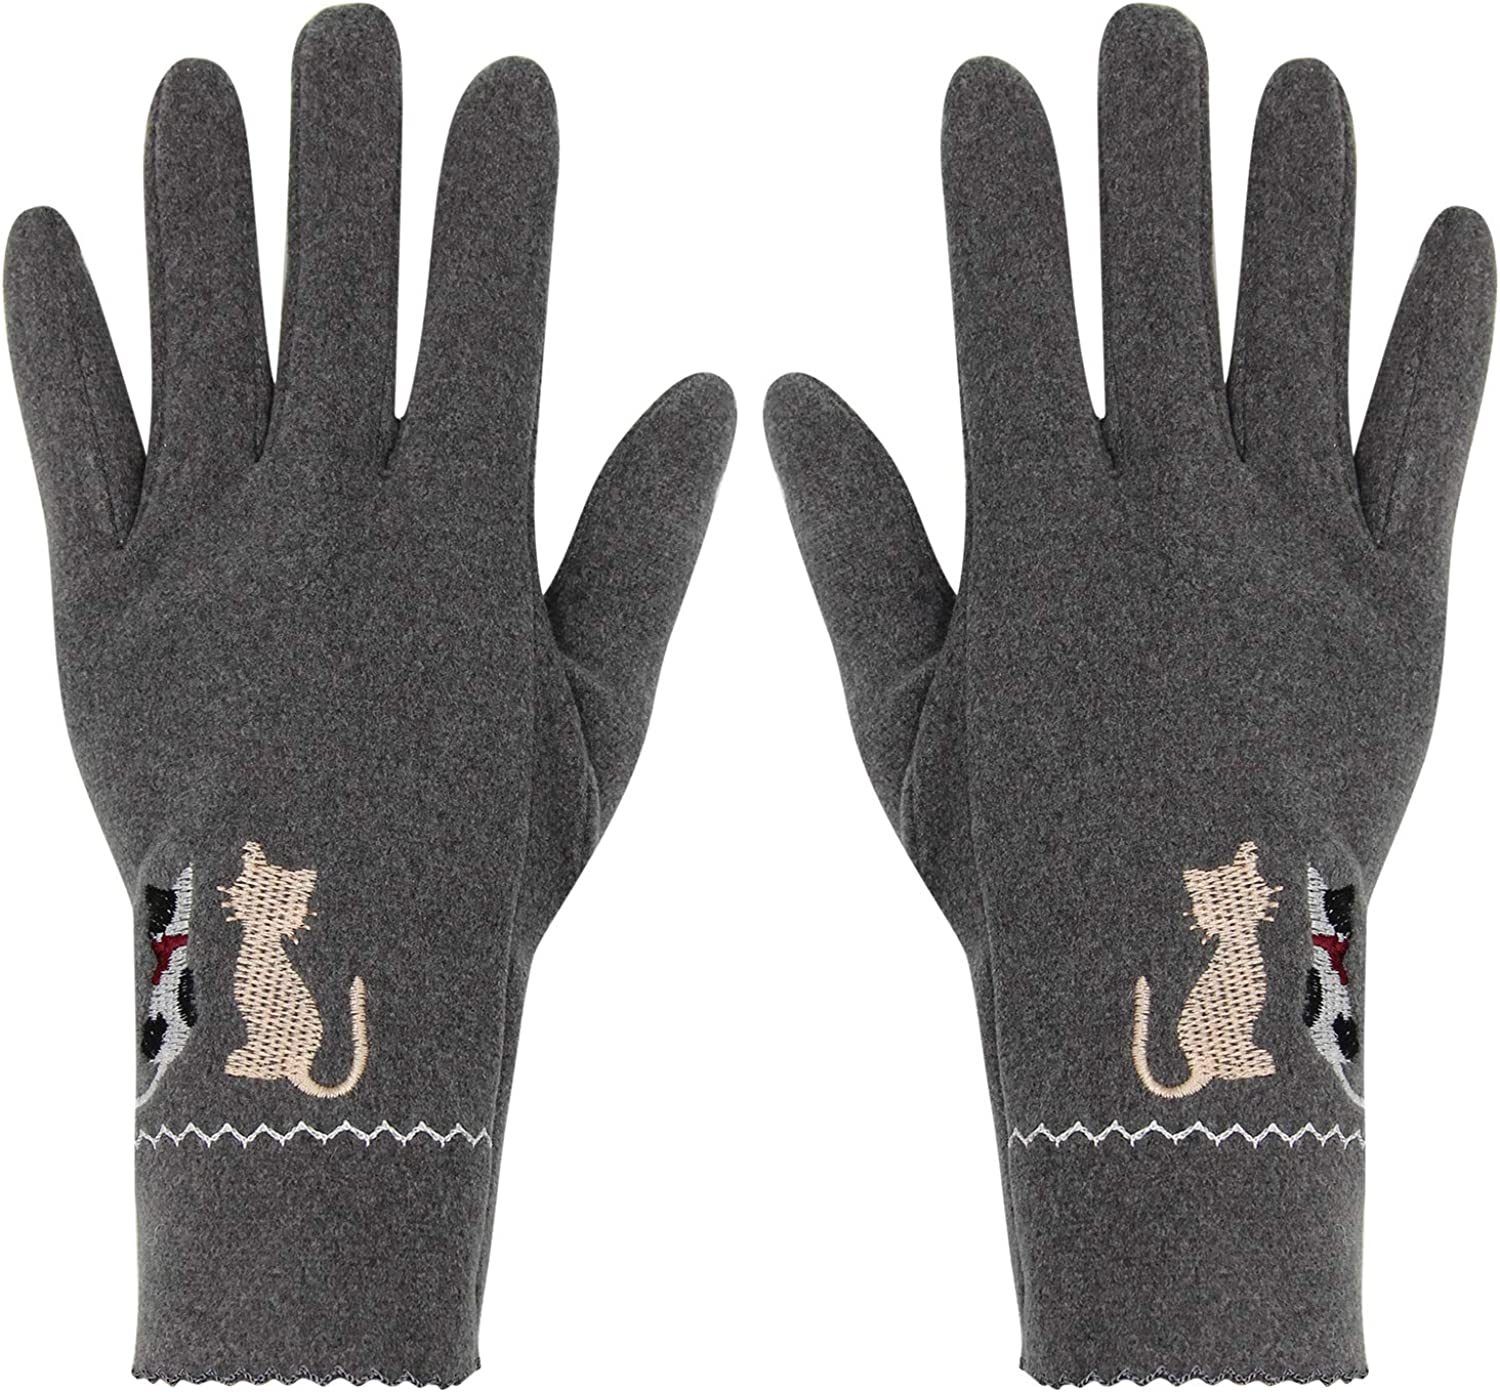 Cute Cat Women's Winter Touch Screen Gloves Full Finger Texting Thermal Mittens